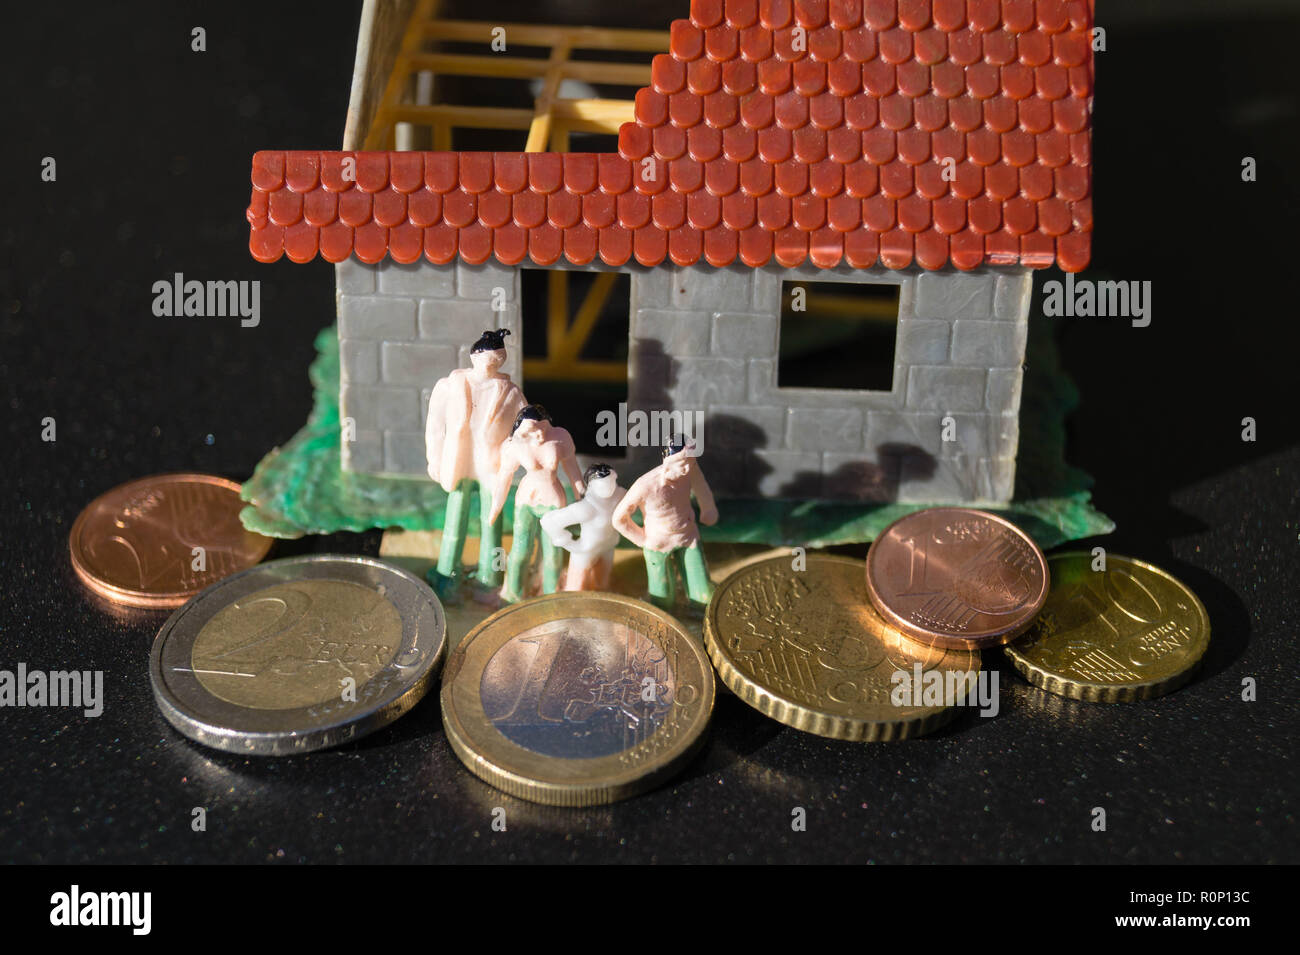 Child benefit to build and finance a home - Stock Image